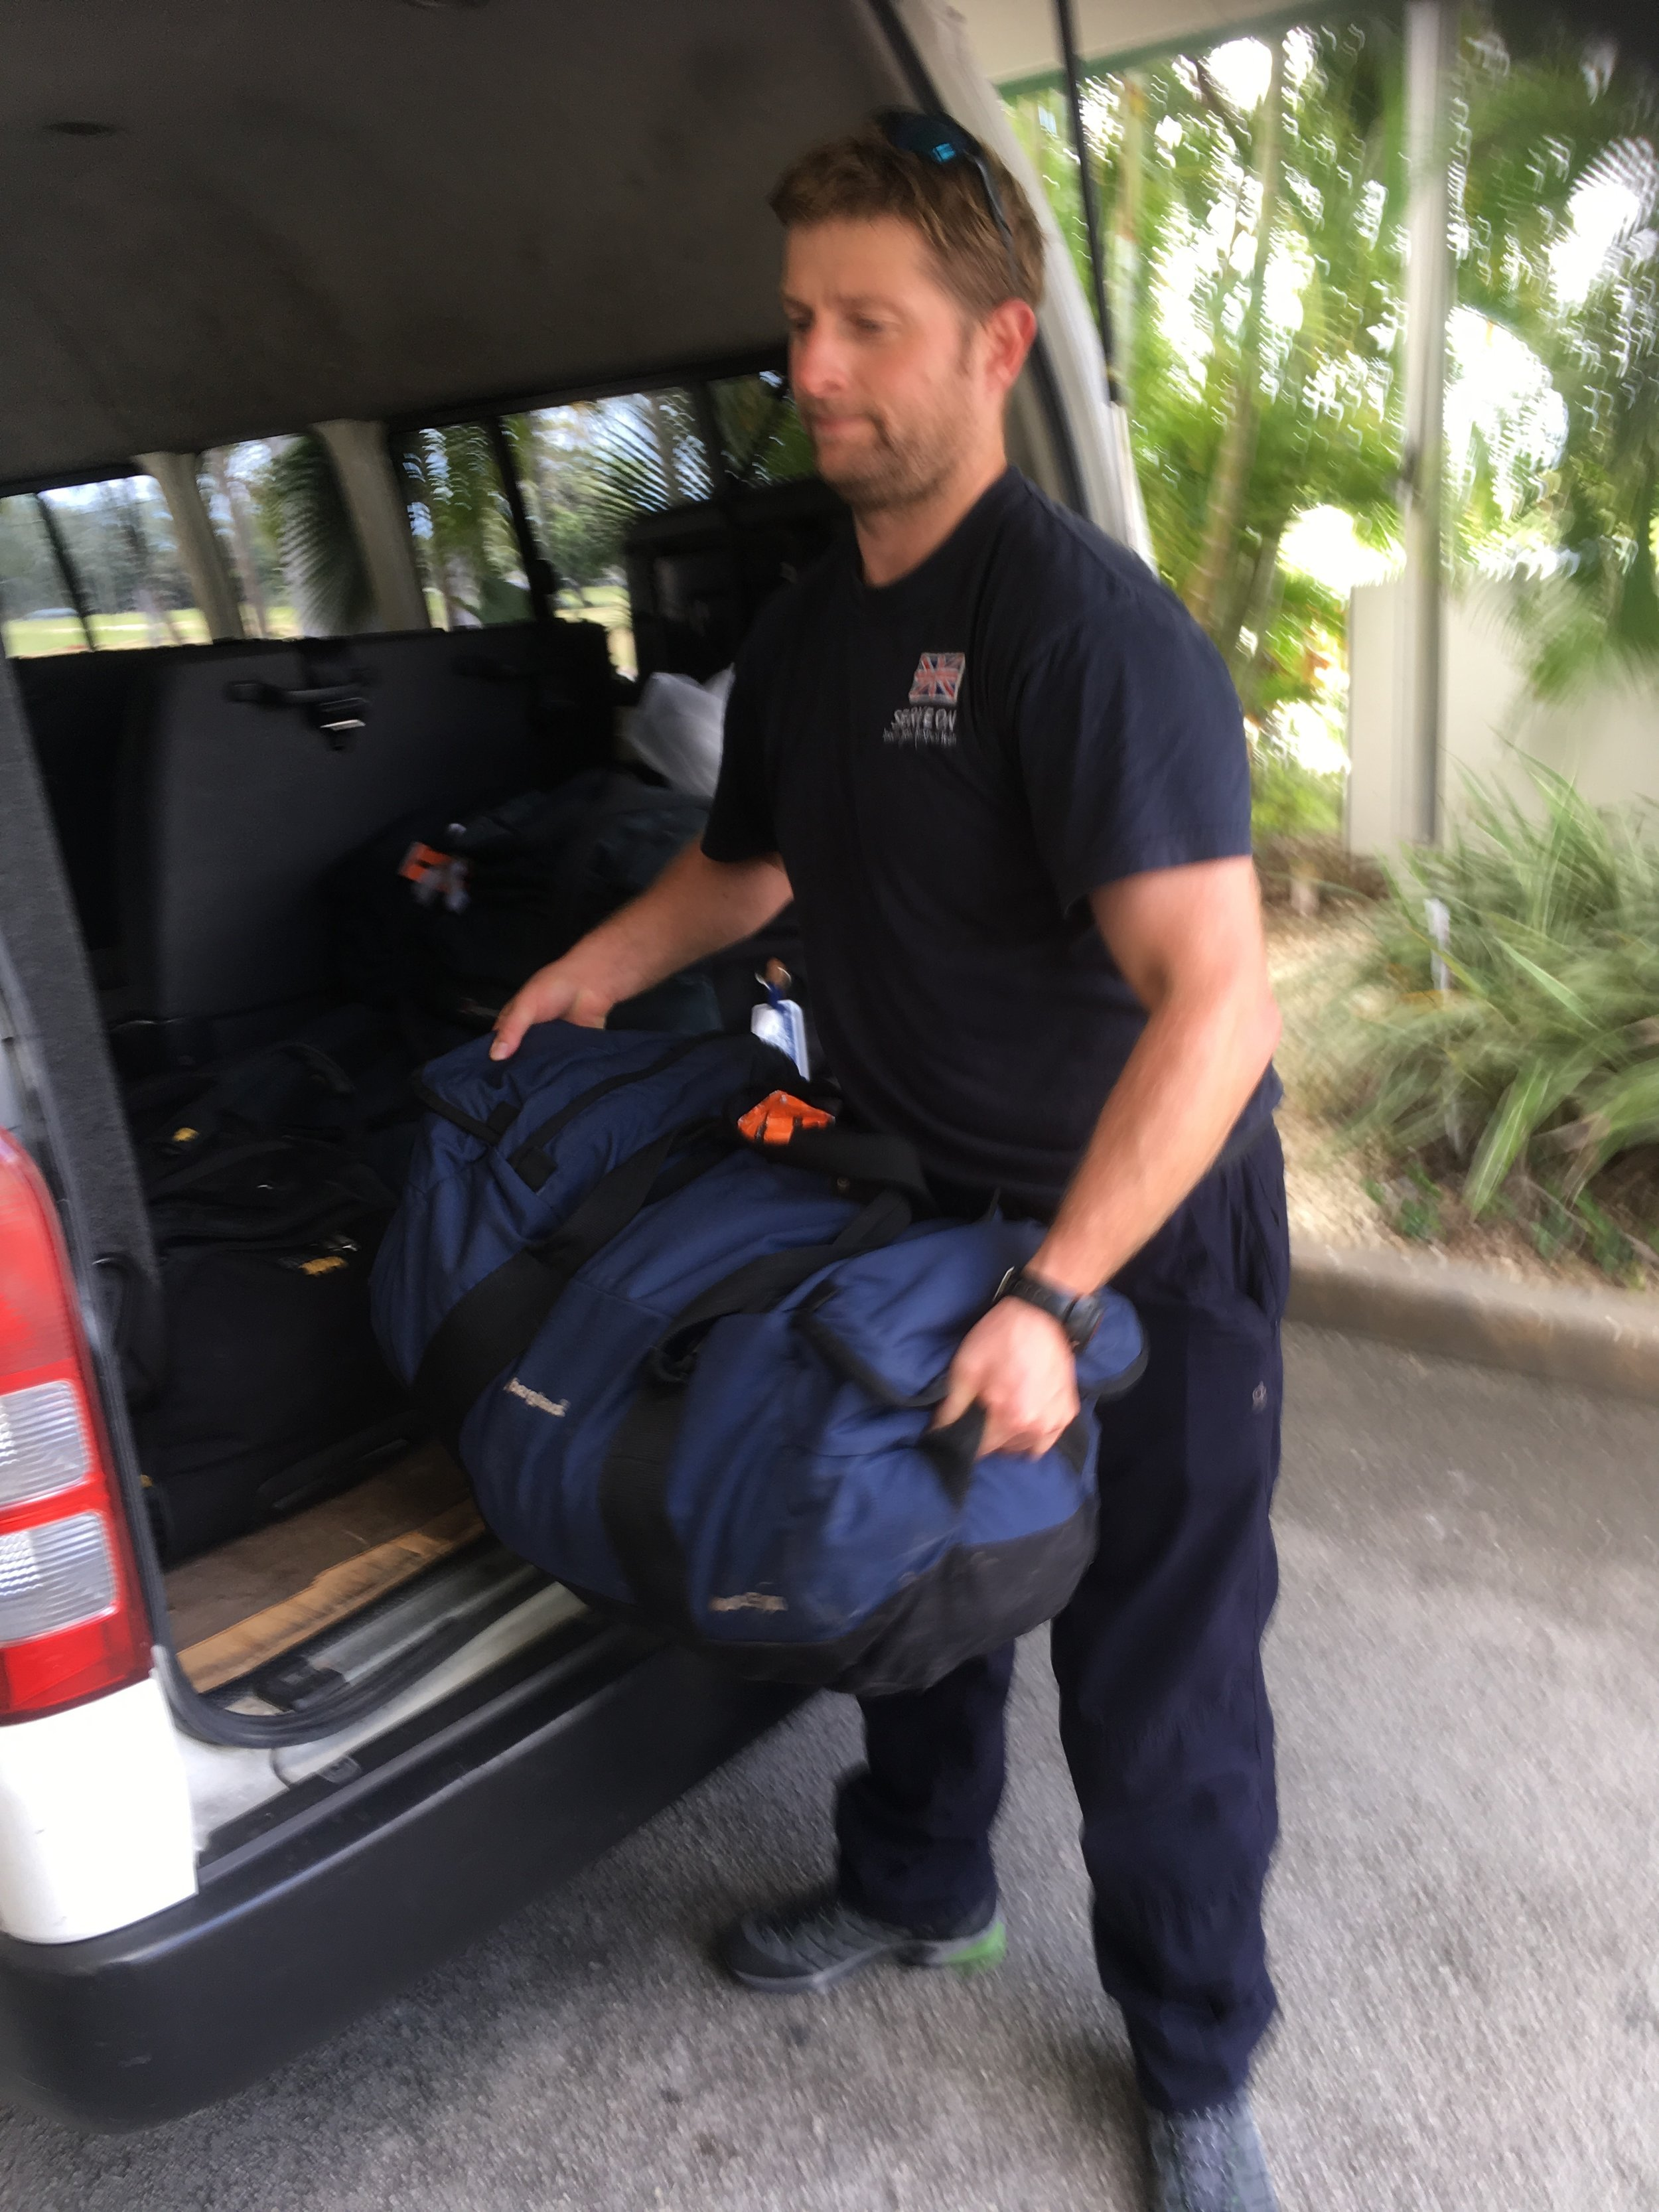 Tom helps the team move their gear to the waiting aircraft